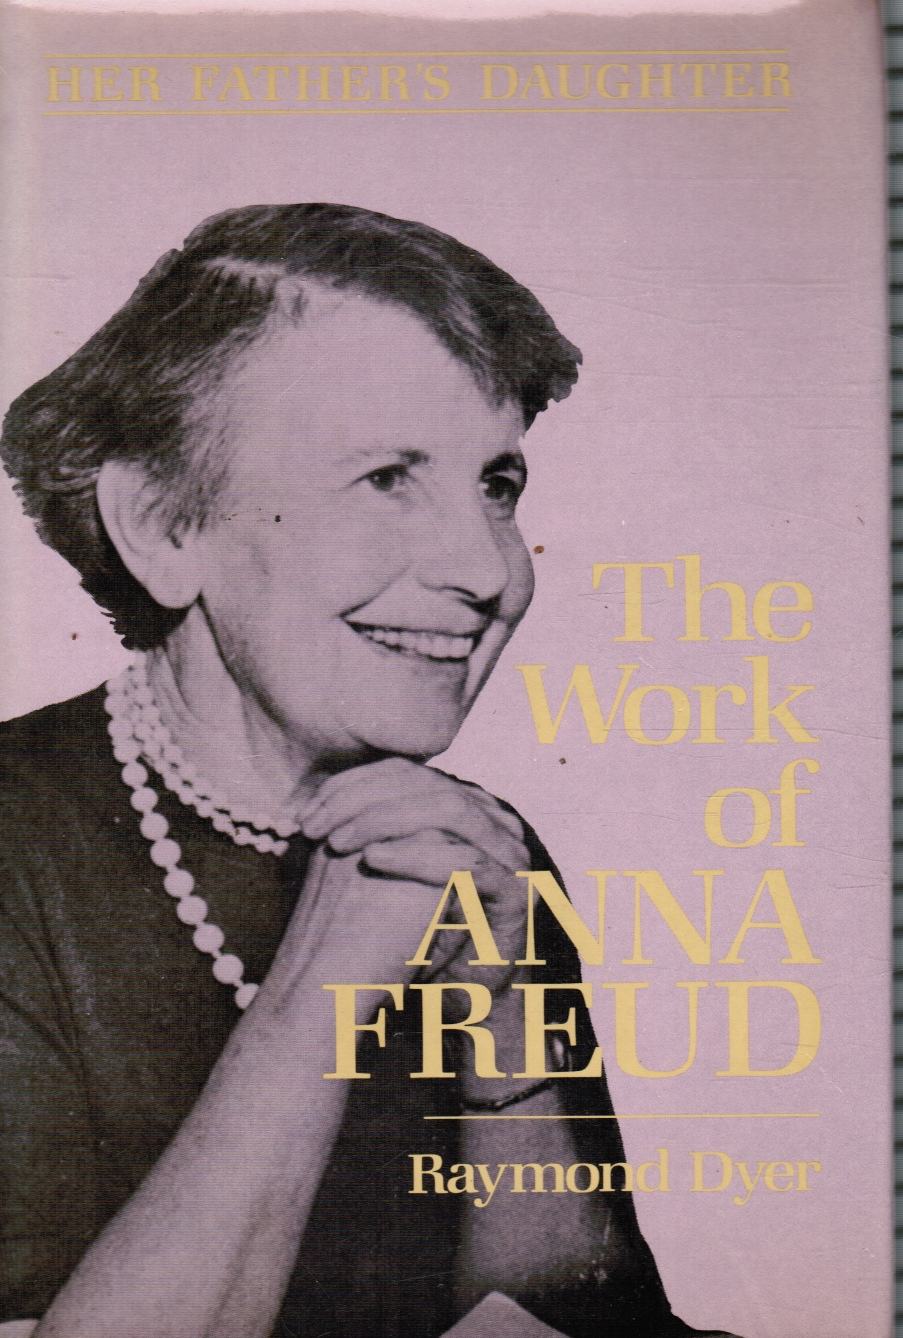 Image for Her Father's Daughter: the Work of Anna Freud